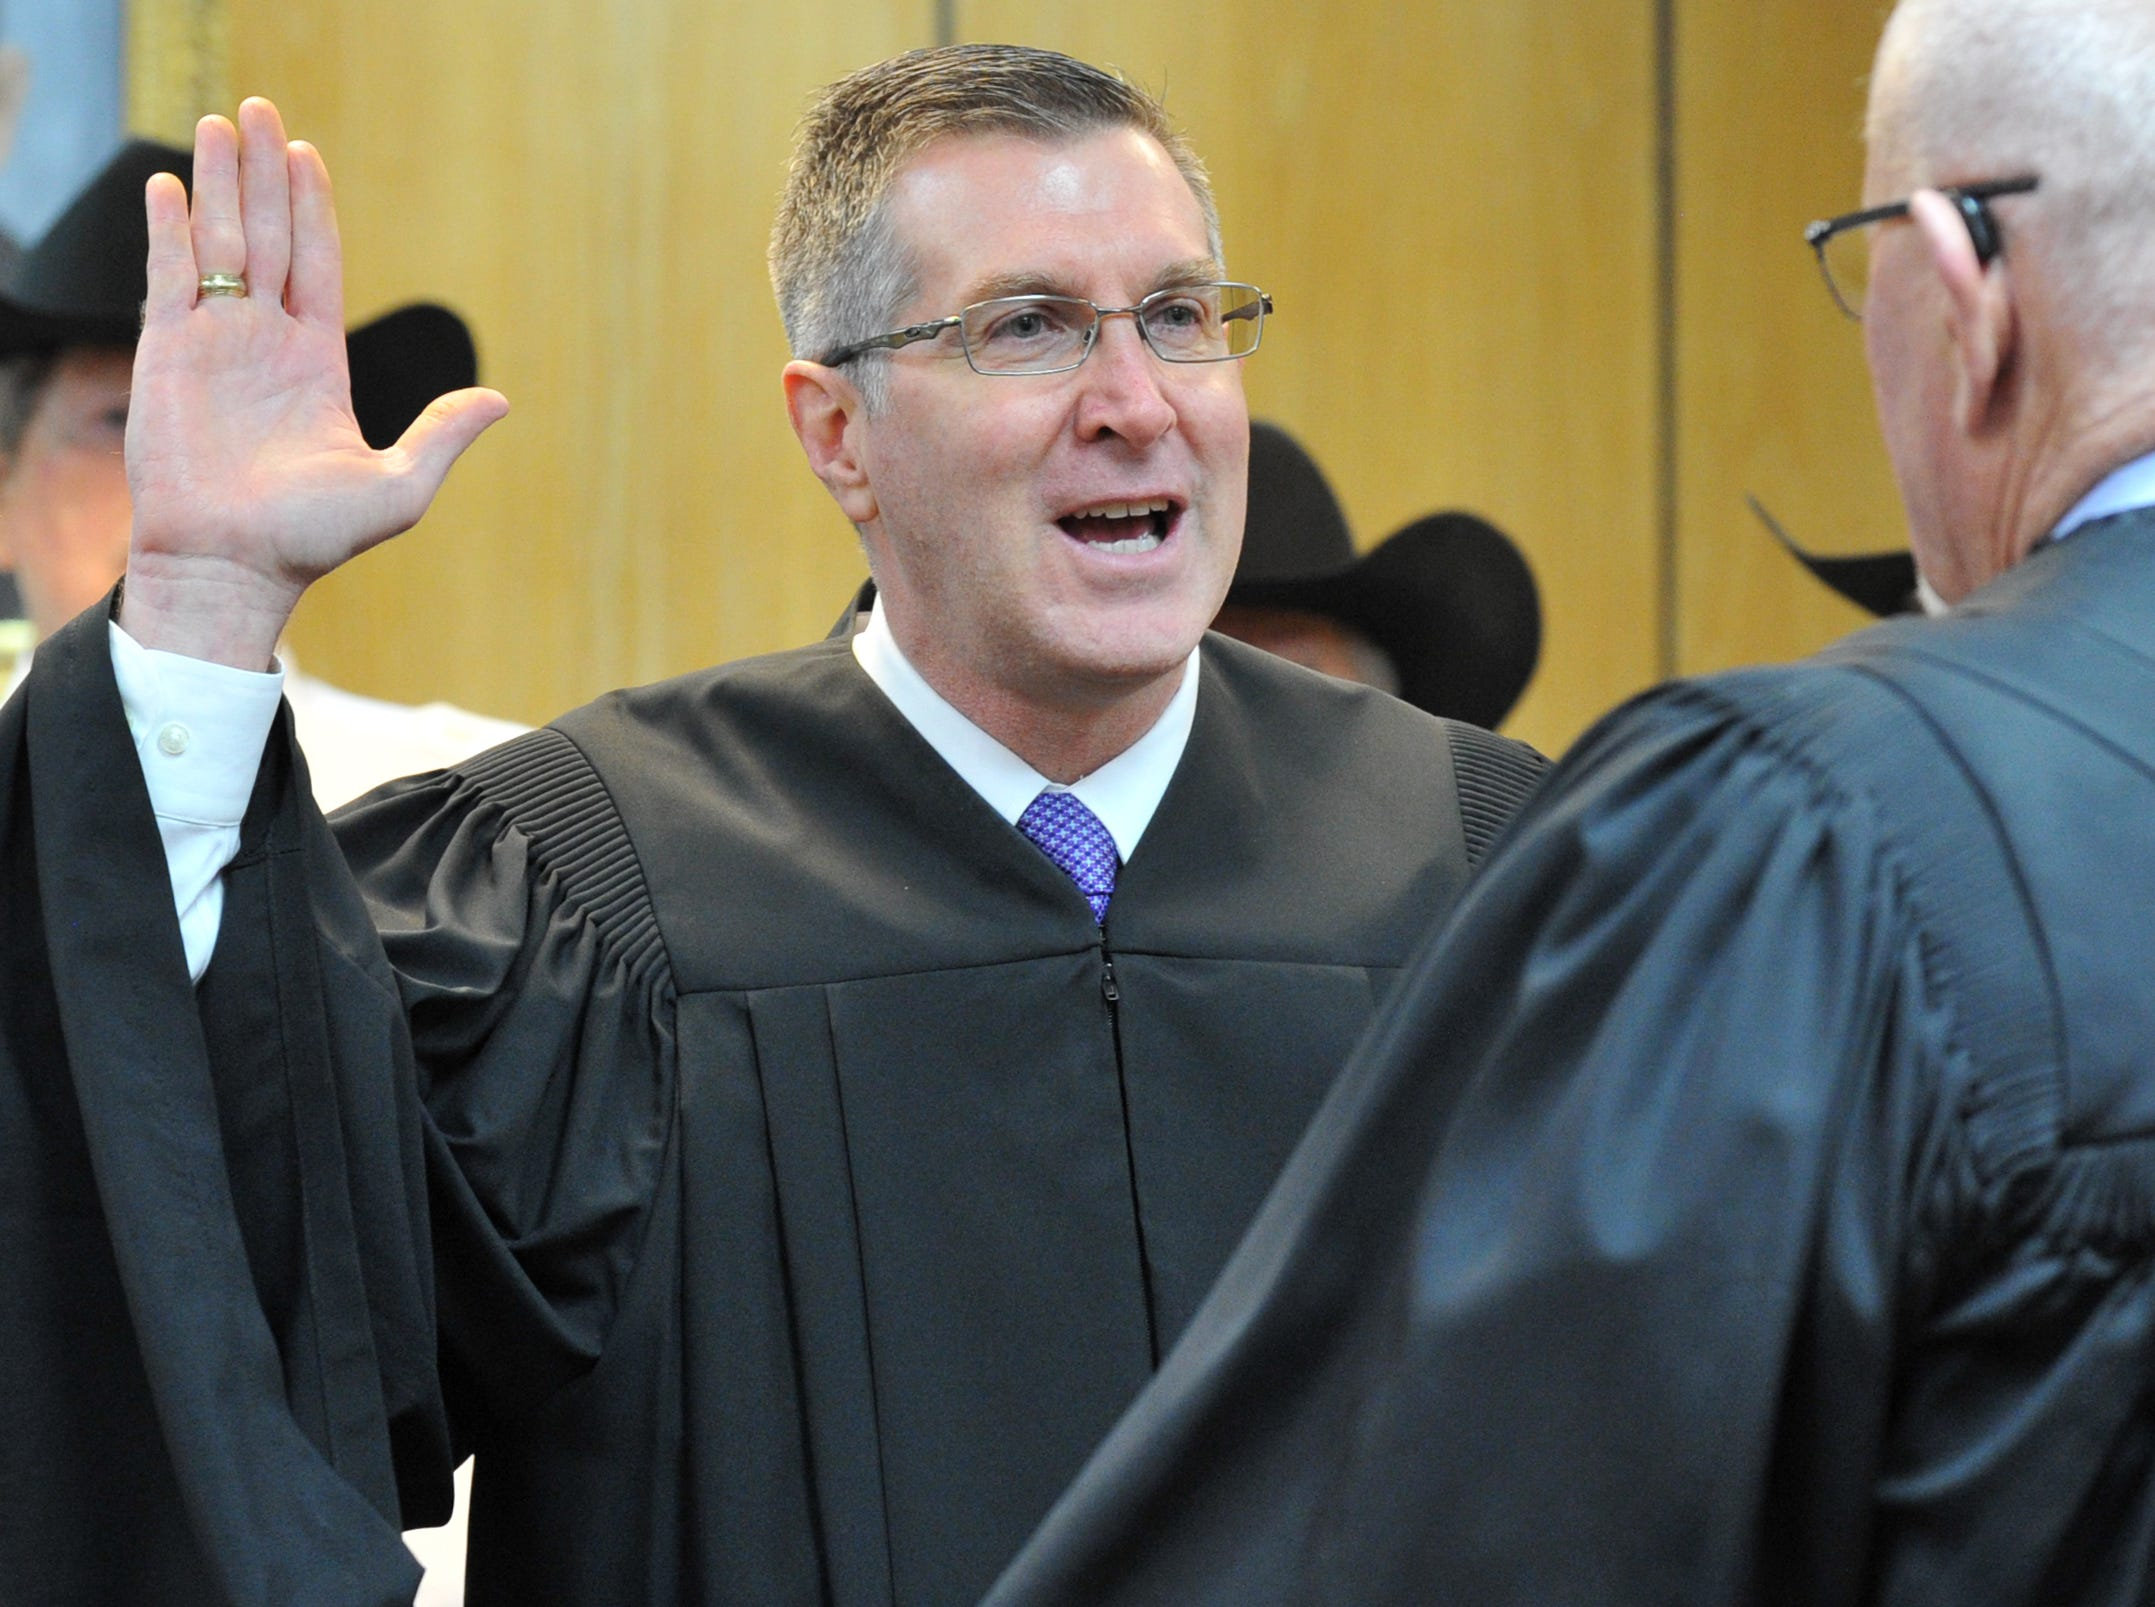 County Court at Law #2 Judge Greg King was sworn in during a ceremony held in the 30th district courtroom, Tuesday morning.